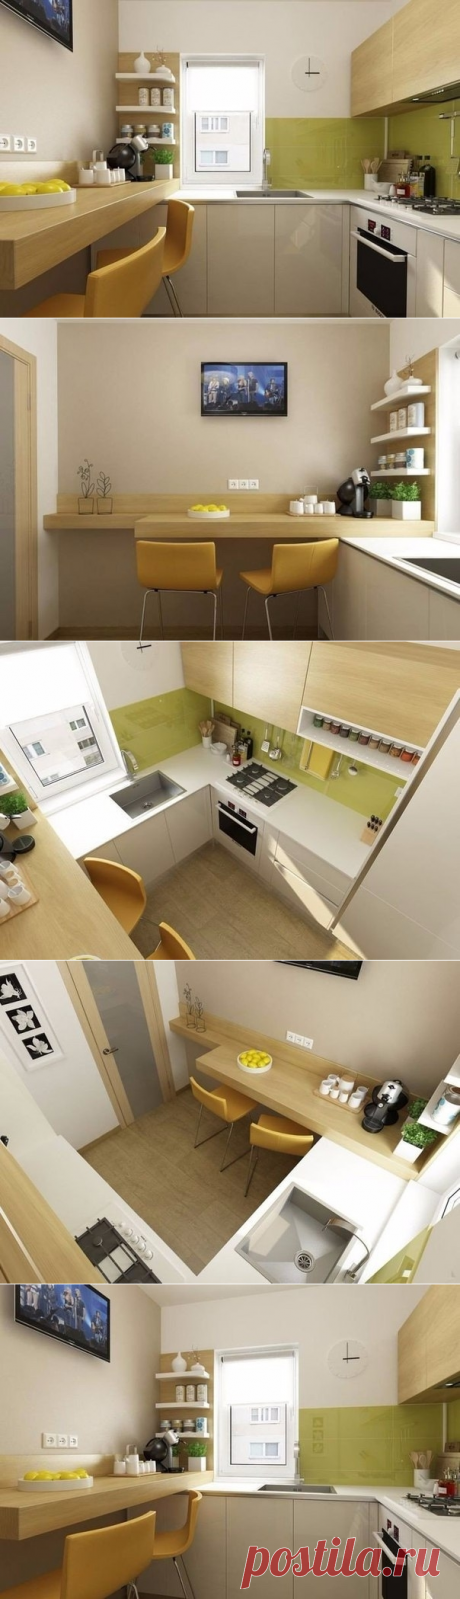 How to register small kitchen: 6 square meters in Bucharest - Interior design | Ideas of your house | Lodgers